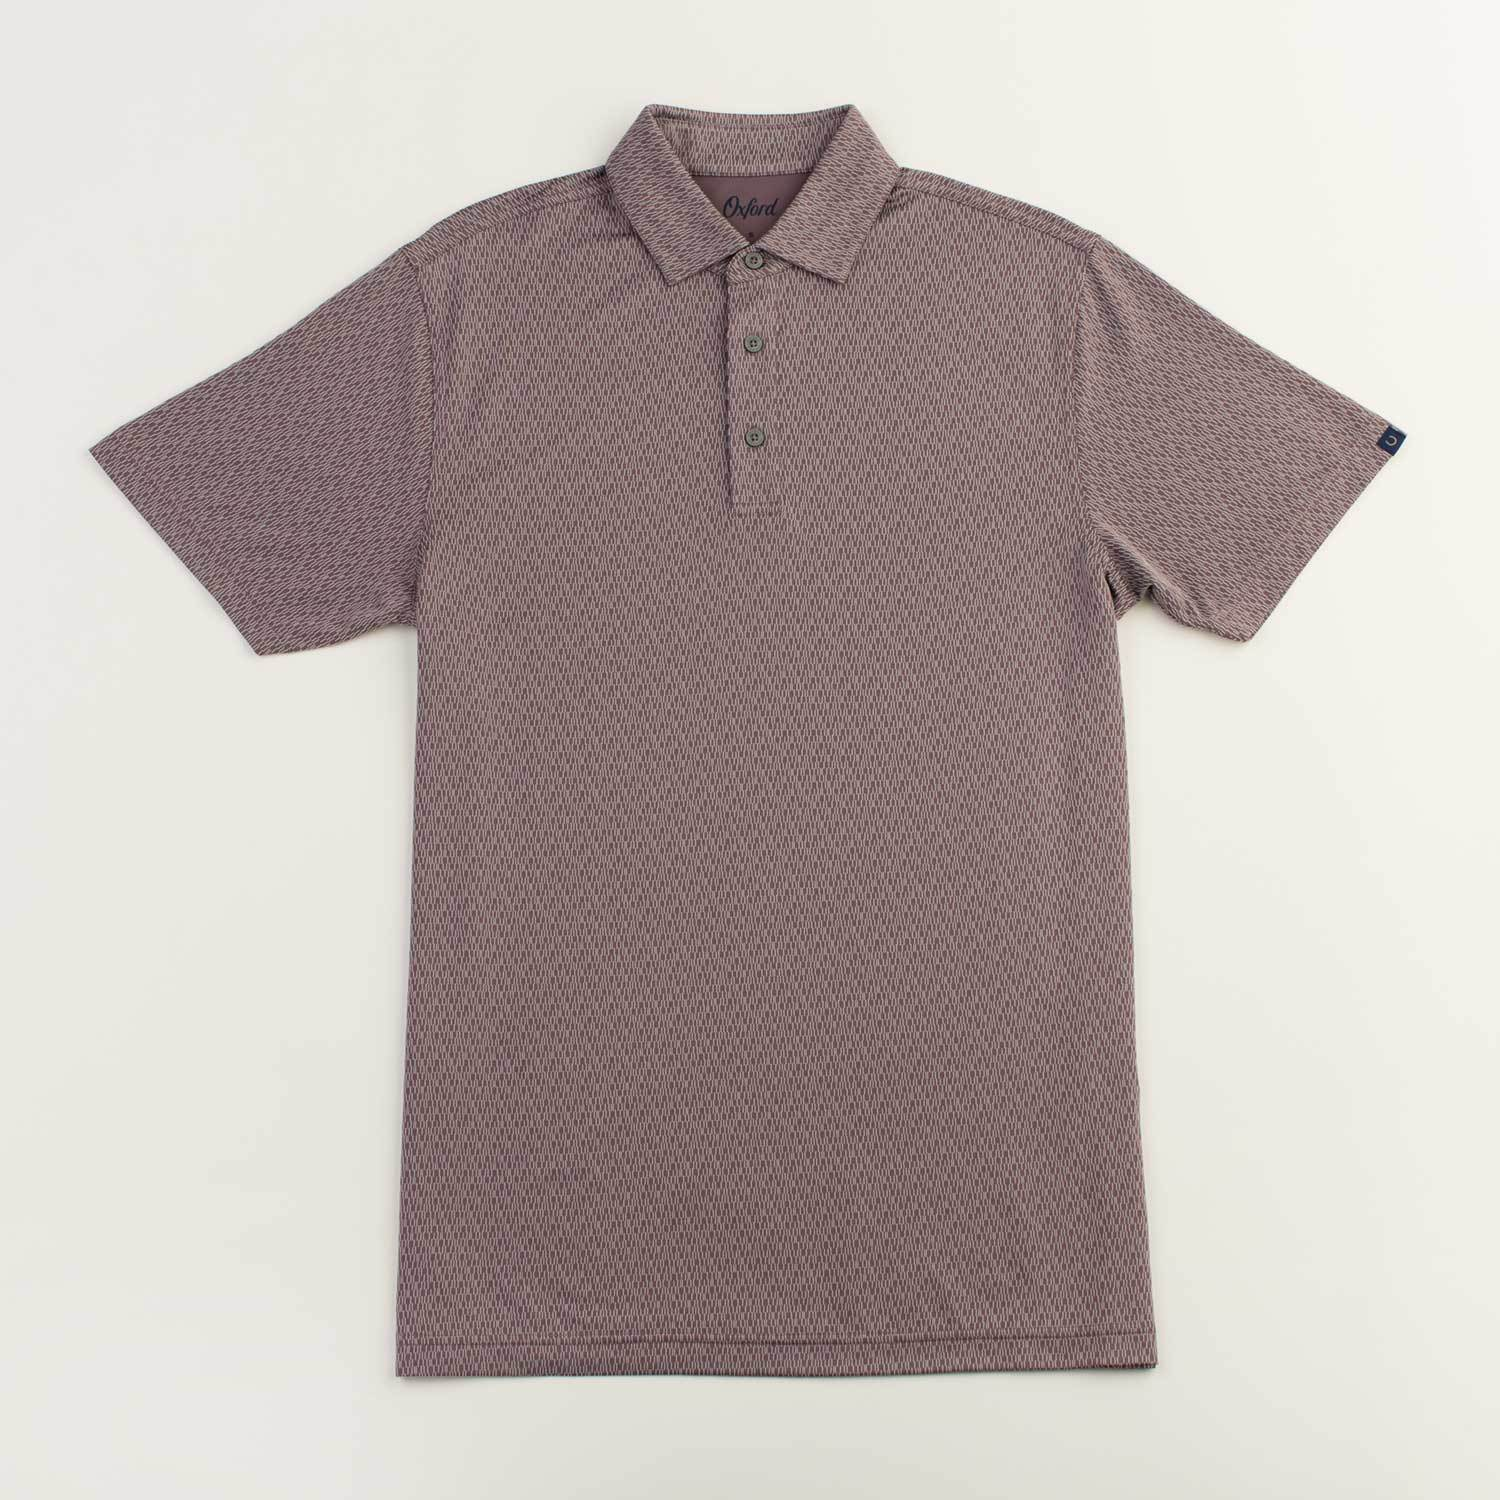 OXFORD HAMLIN PERFORMANCE JACQUARD POLO